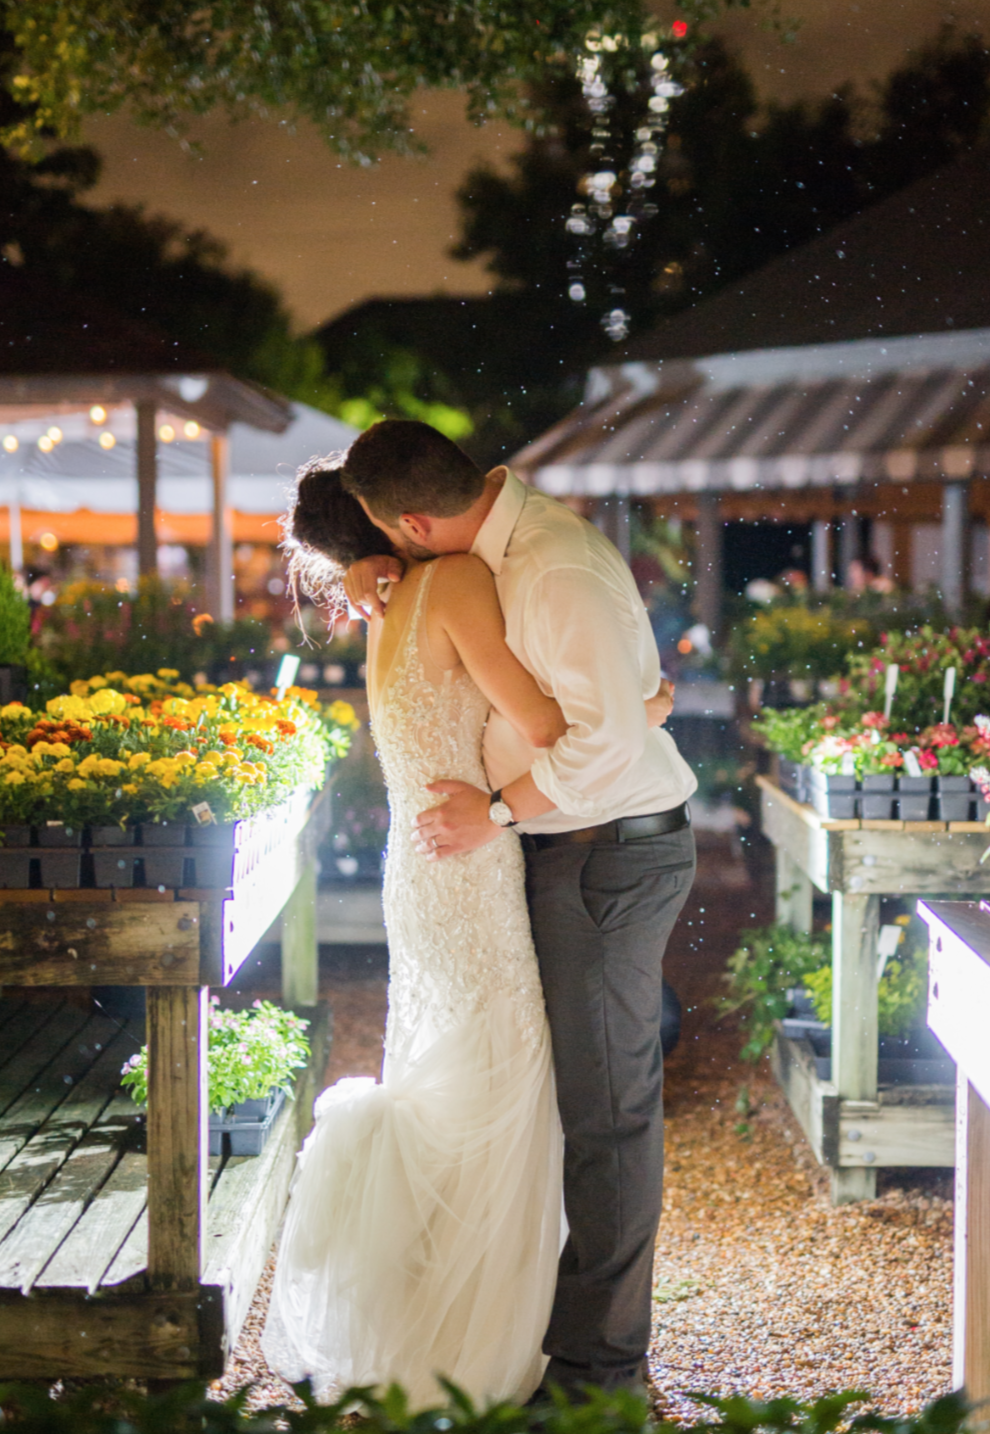 Ending the night in the garden with a kiss.